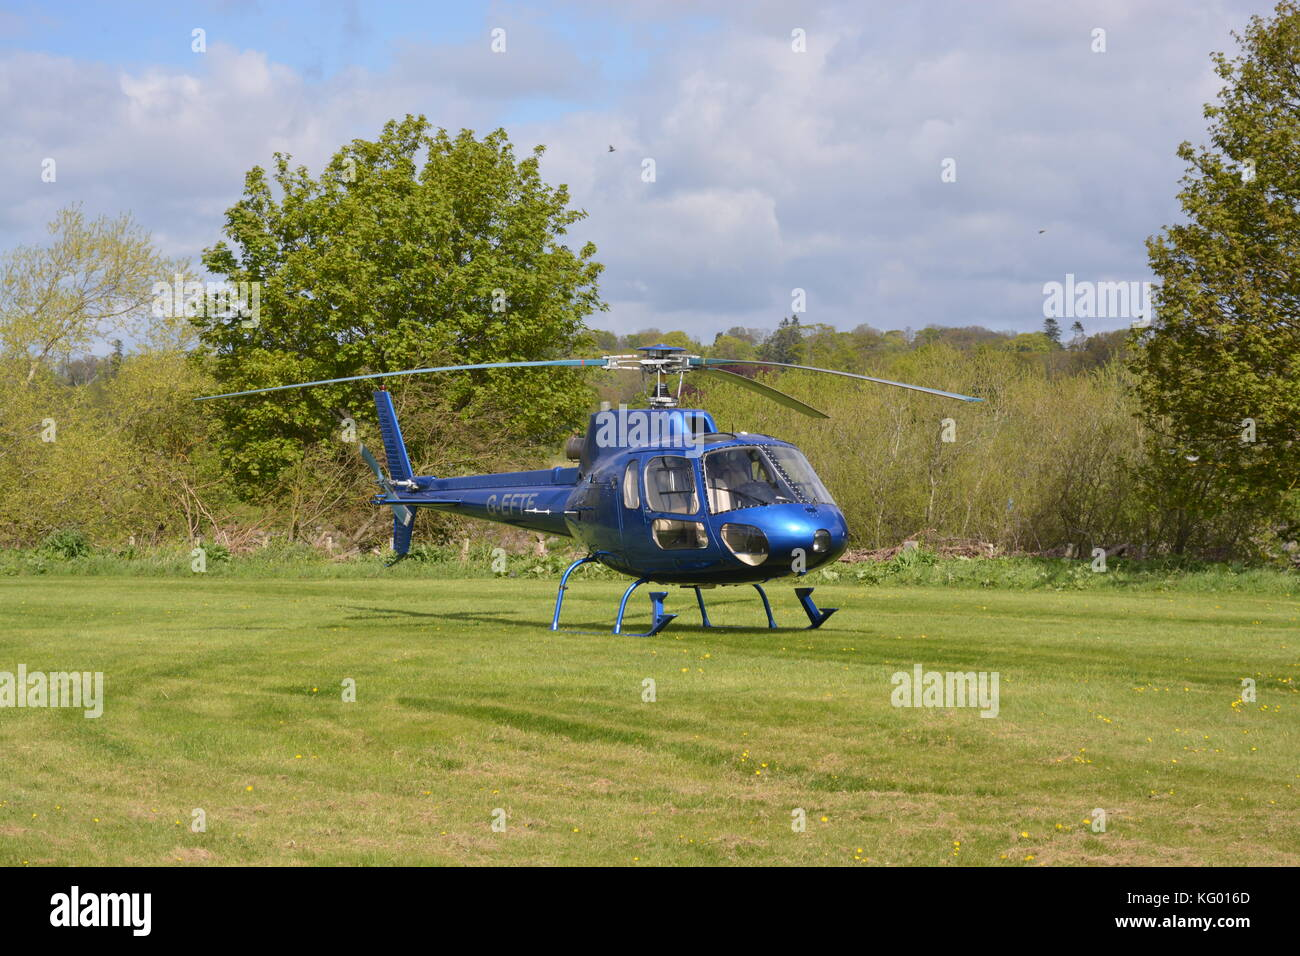 1985 Aerospatiale AS-350B Ecureuil helicopter - Stock Image